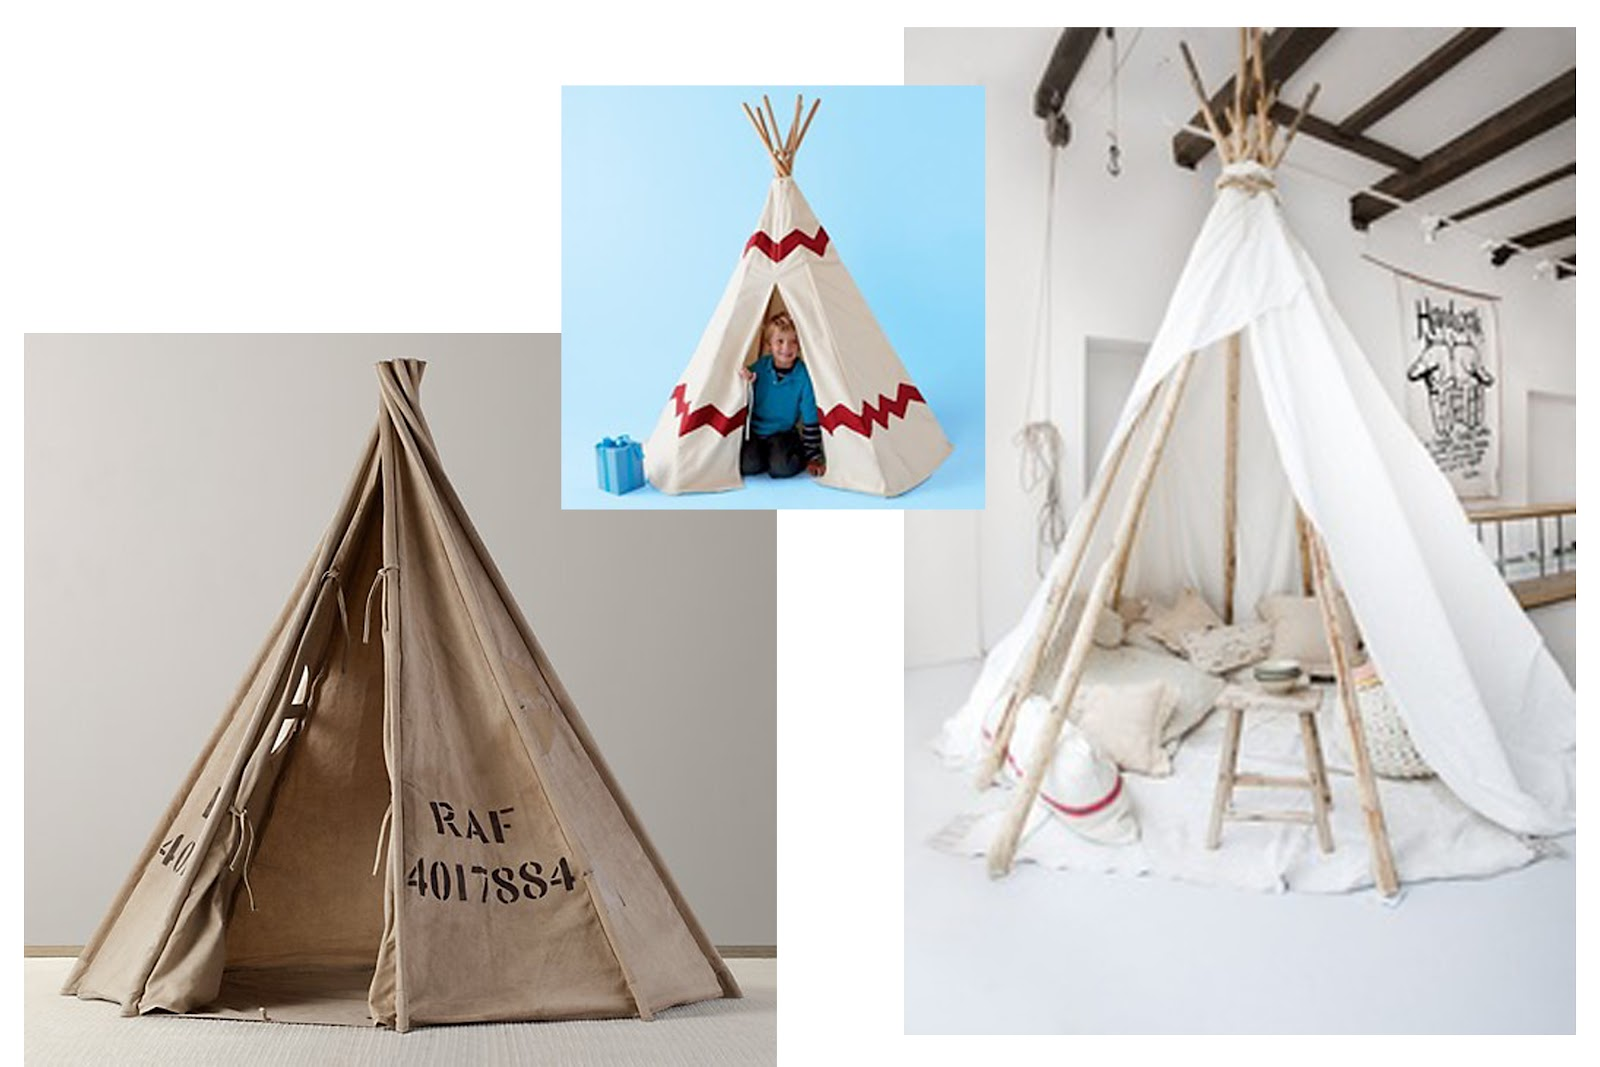 recycled canvas play tent land of nod teepee (no longer available) and white one via pinterest & the RA RA Home: Trees + Tents